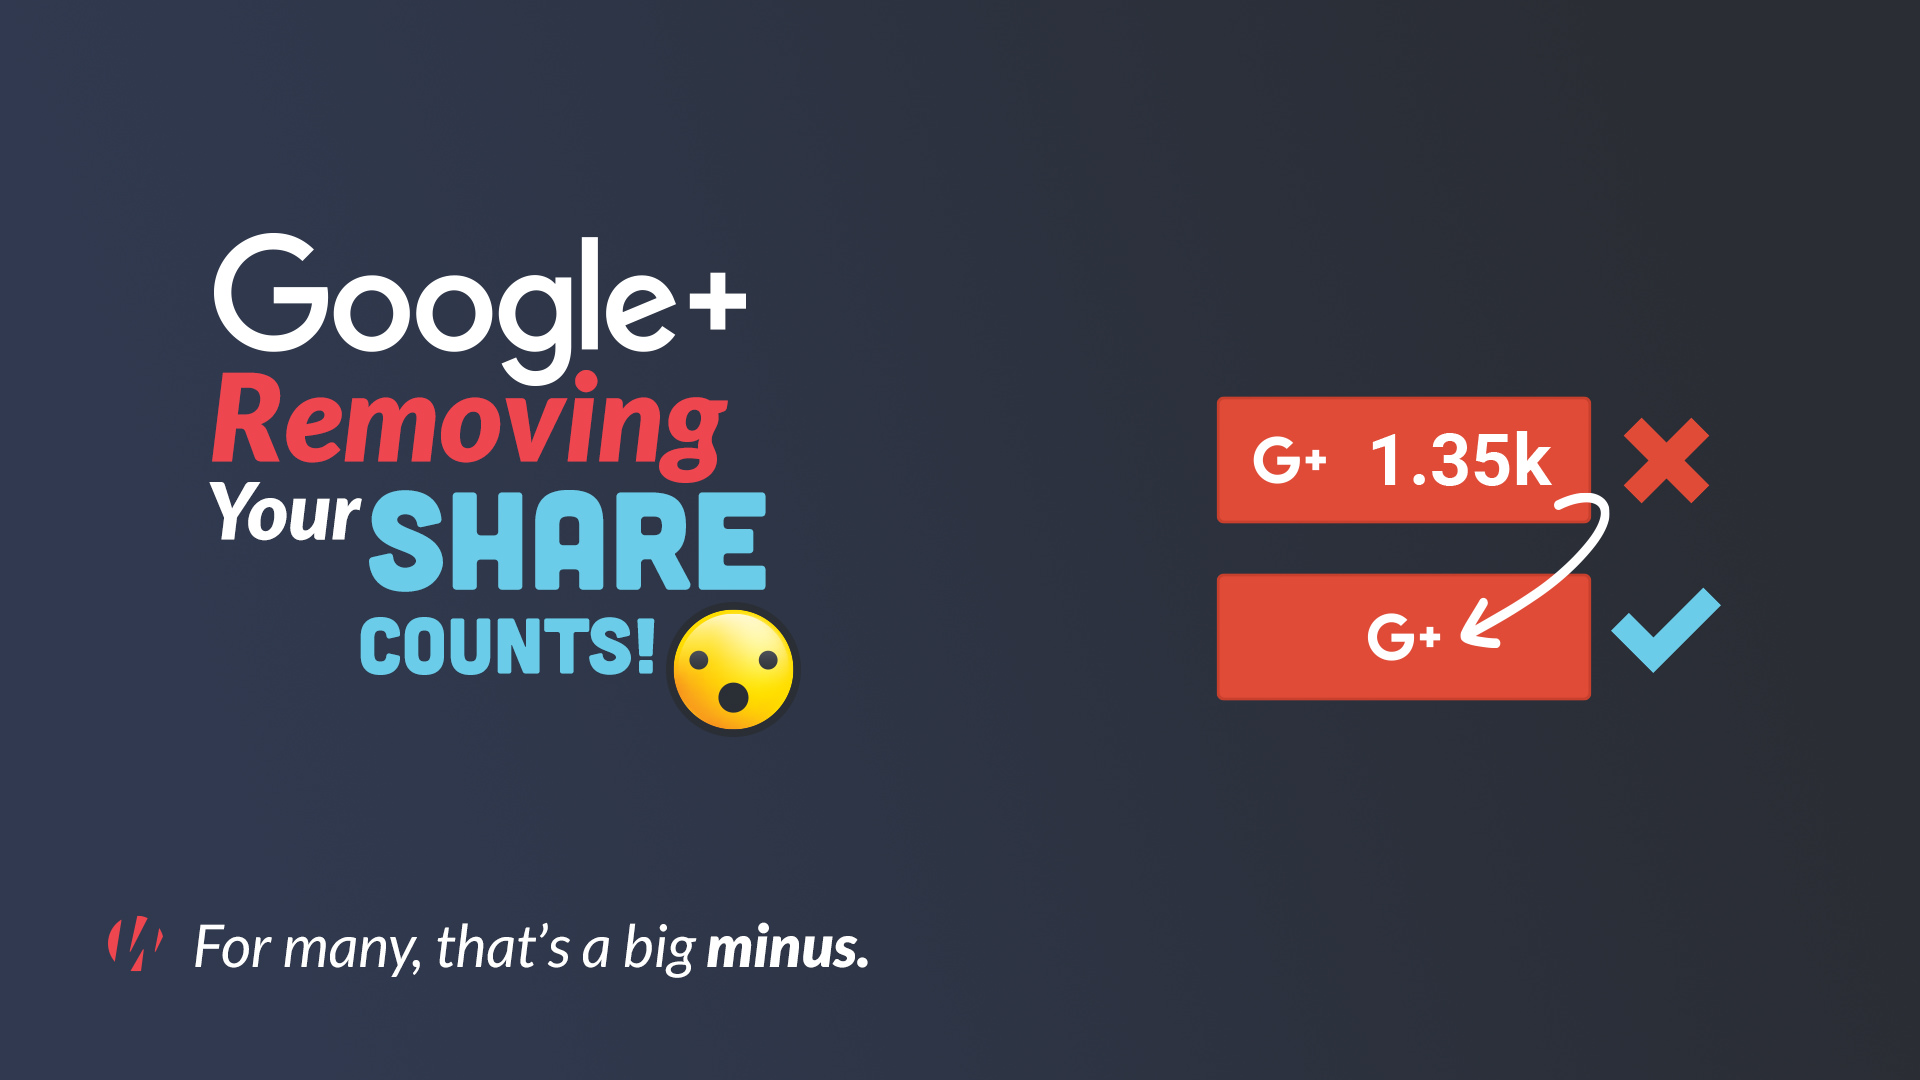 google is removing share counts everything you need to know rh warfareplugins com Google Plus Icon Black Google Plus Photo Sharing